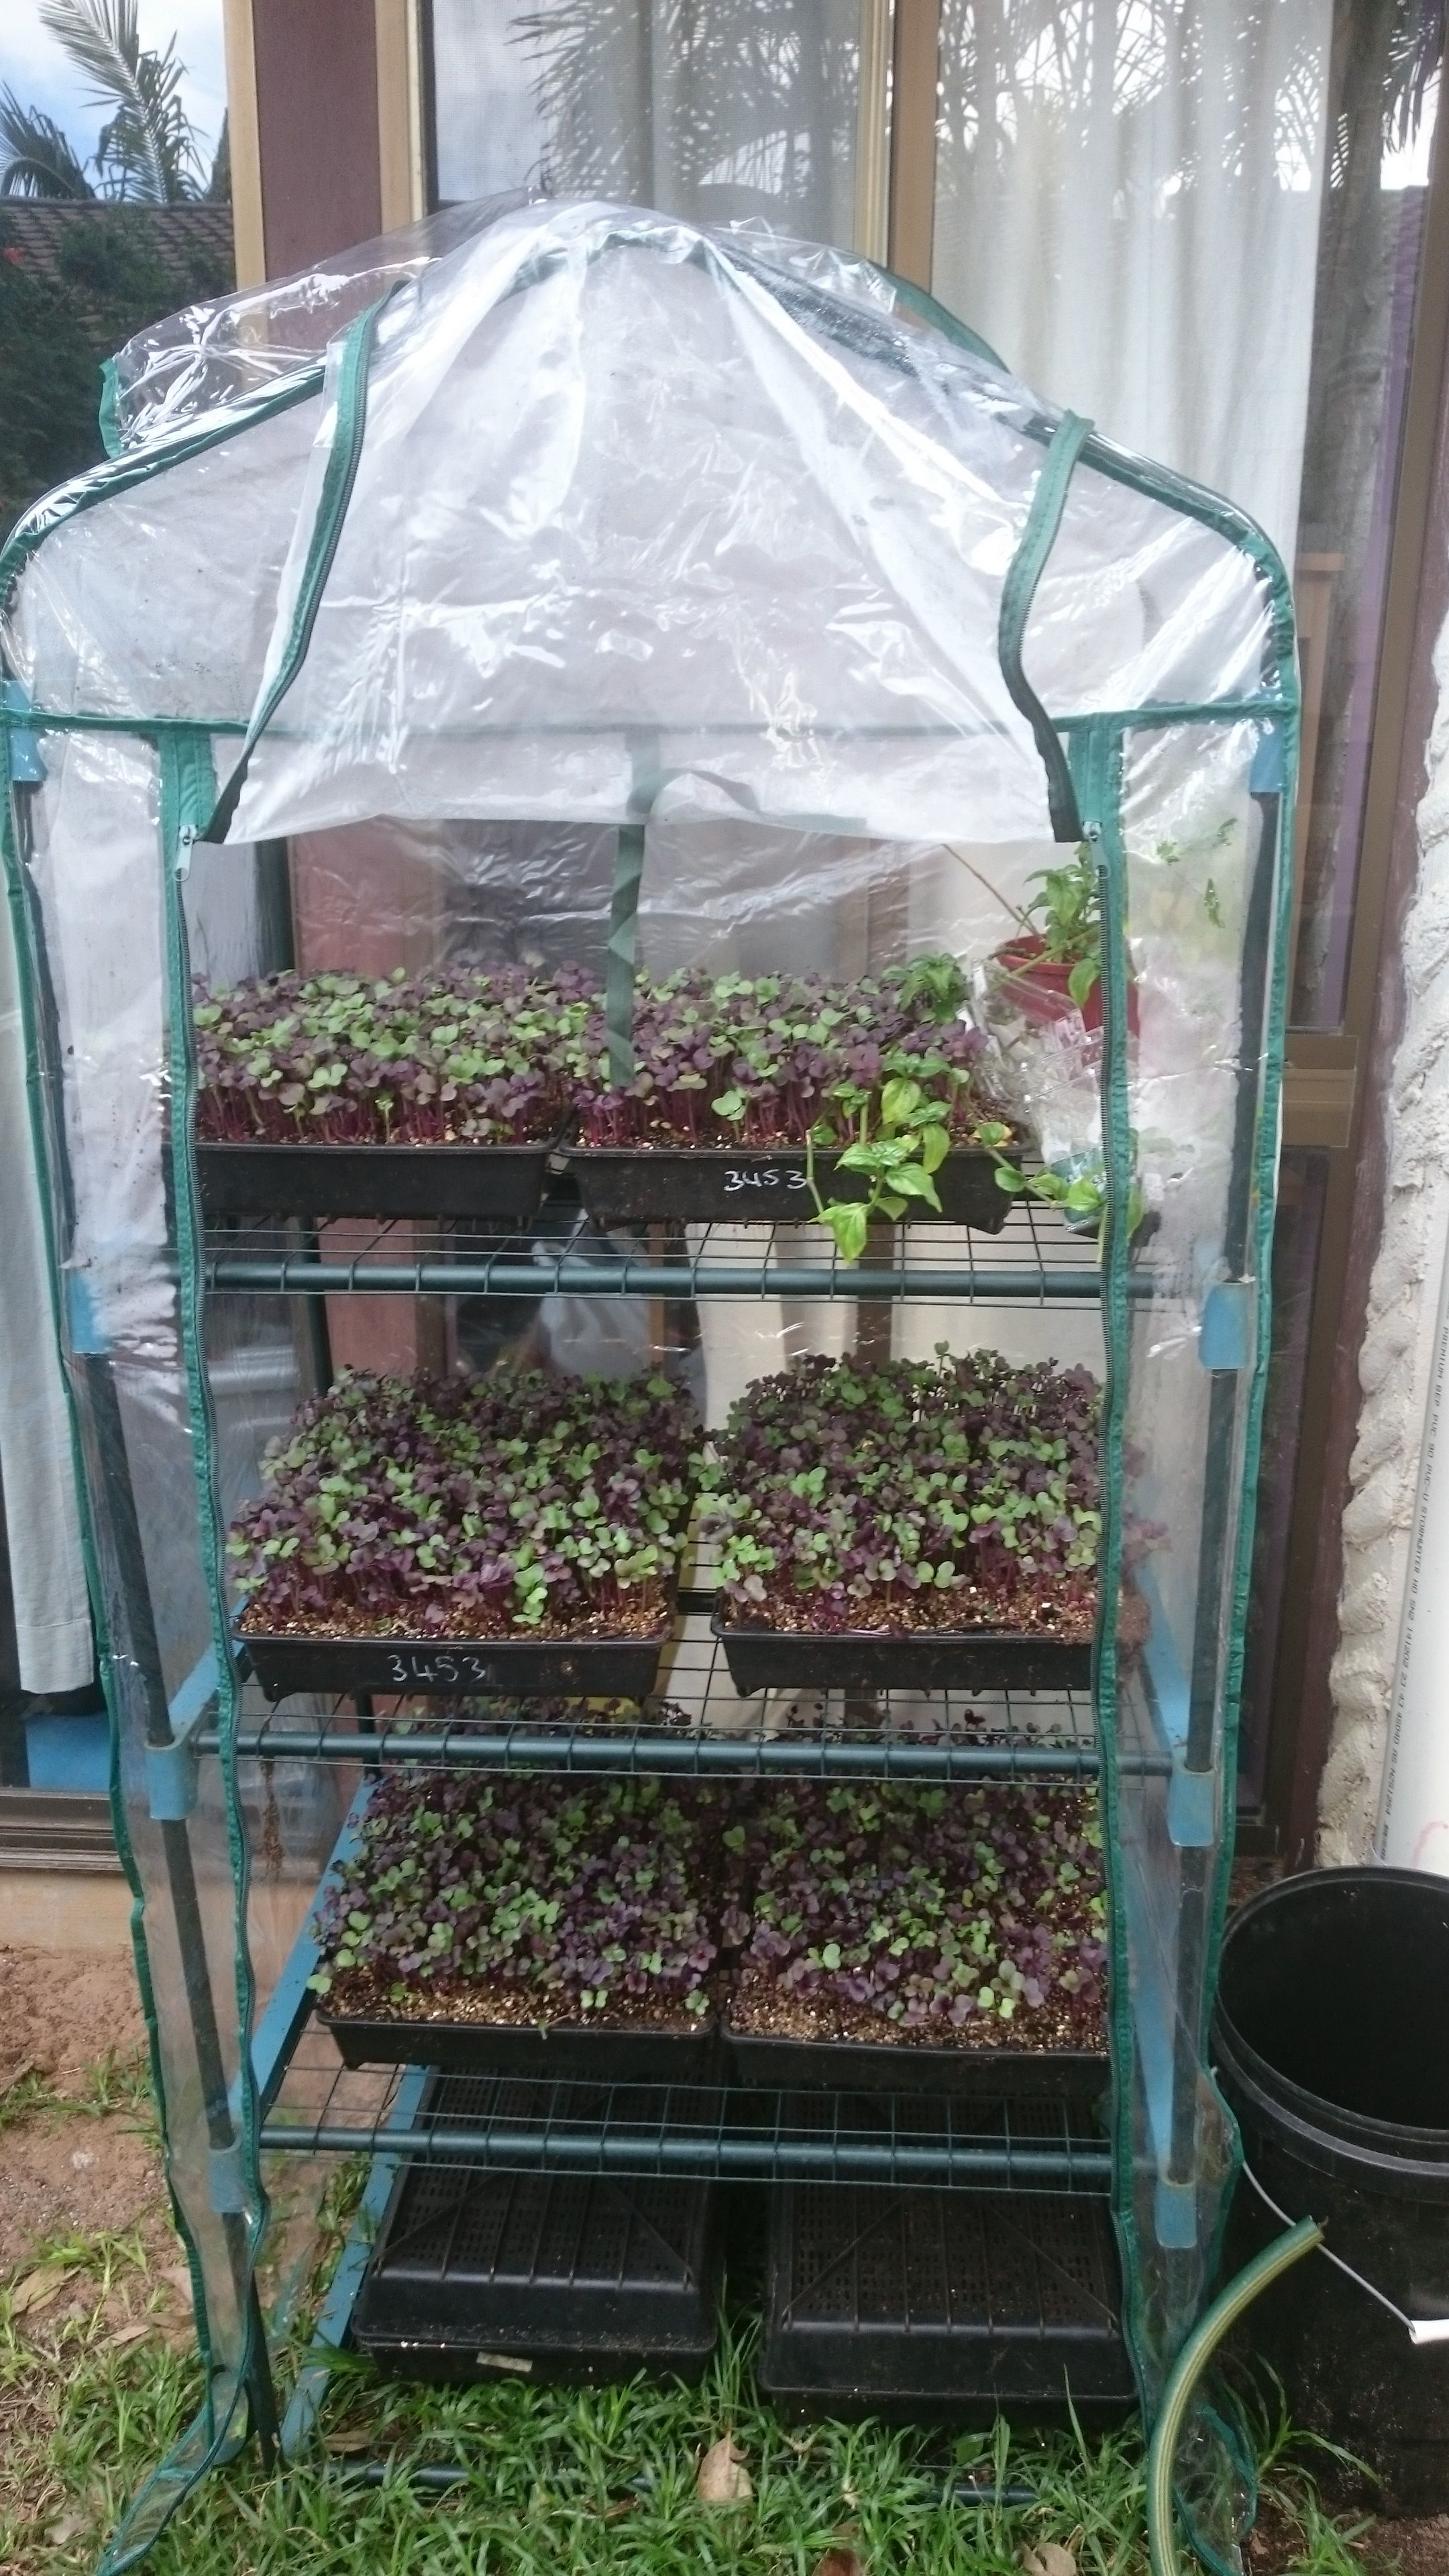 The greenhouse gold coast - Marty S Garden Mini Greenhouse For Microgreens Learn How To Grow Fresh Food In Urban Places